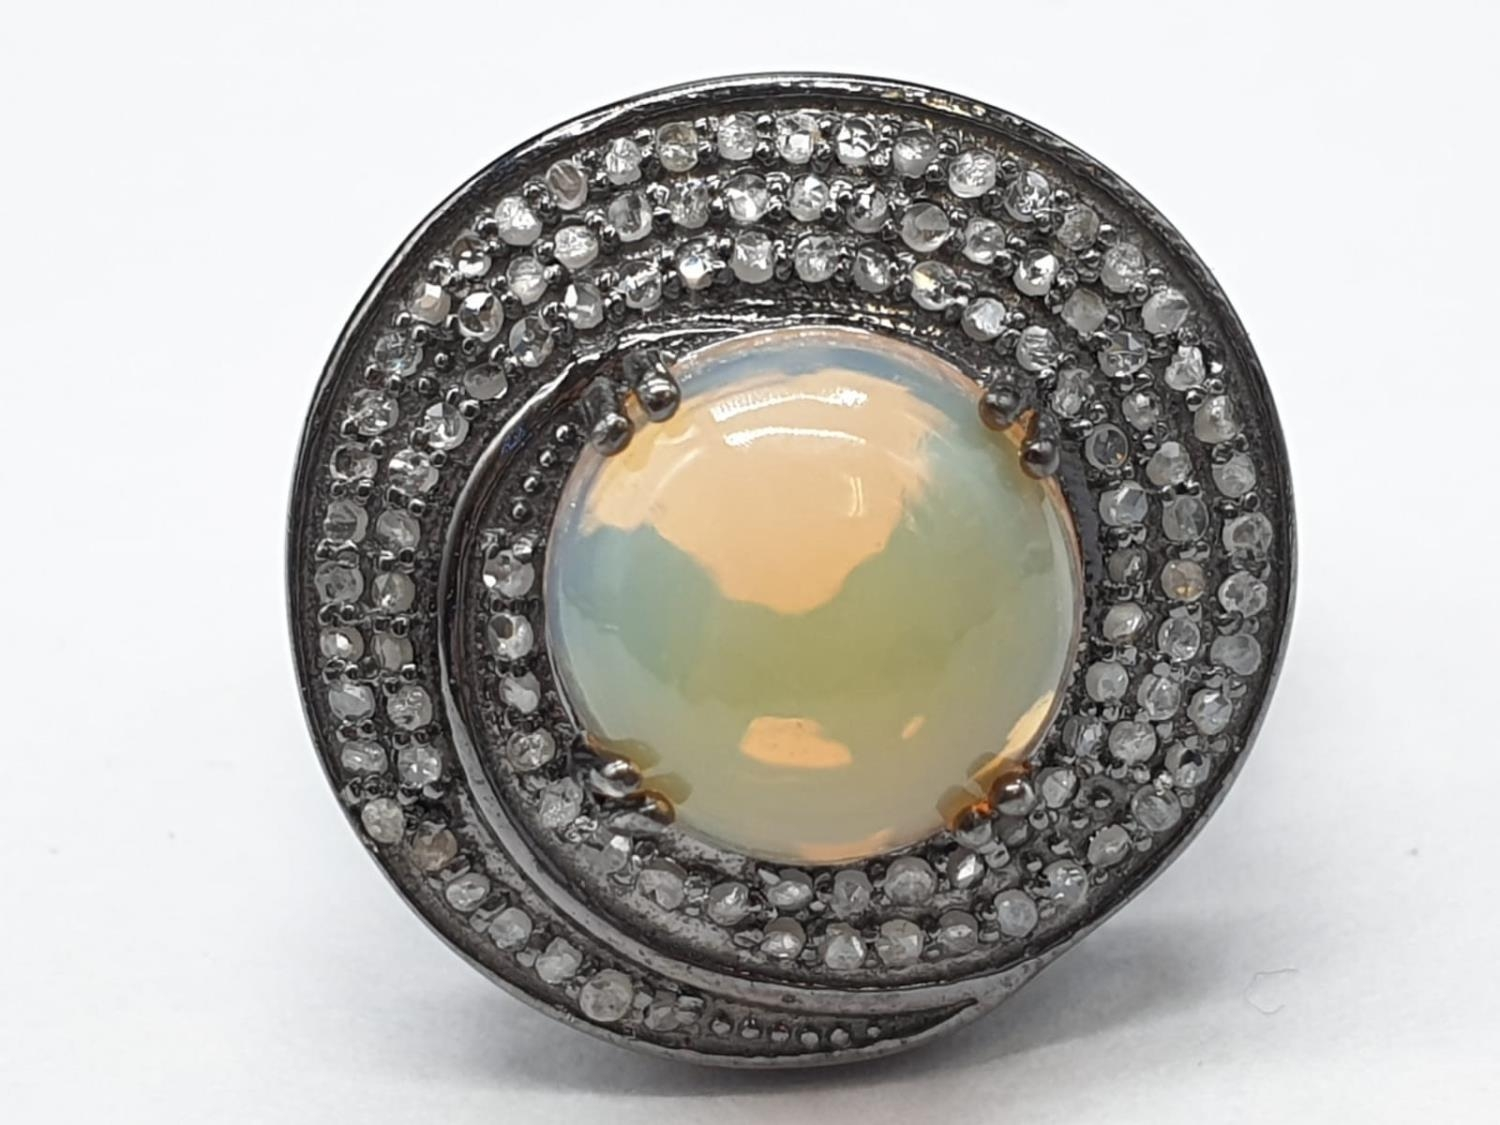 3.50Ct Fire Opal set within a blackened silver ring, with 0.55Ct rose cut diamonds, WEIGHT 6.92G and